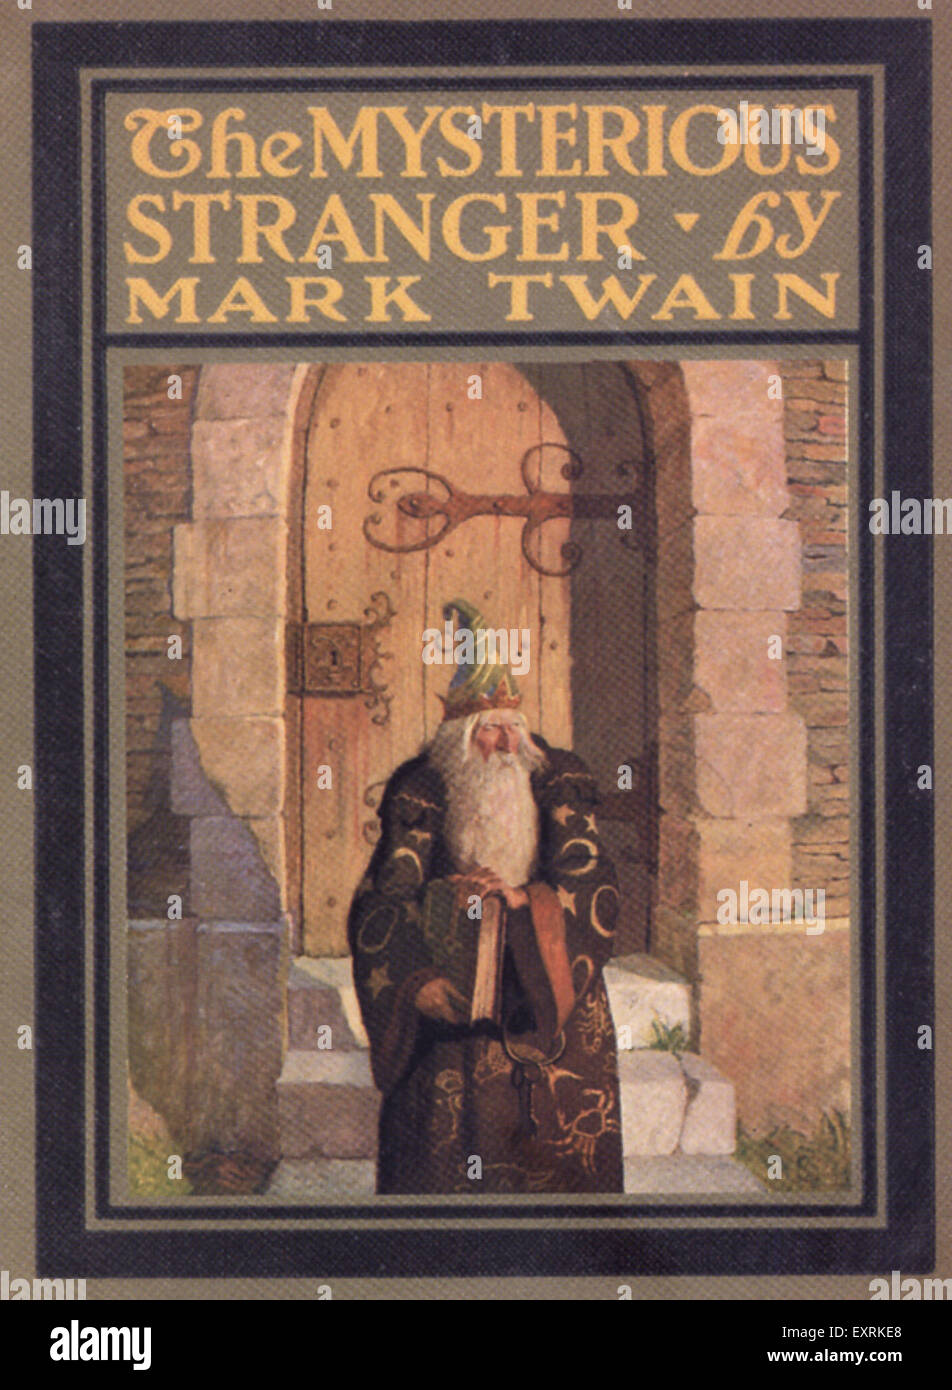 Book Cover Photography Uk : S uk the mysterious stranger by mark twain book cover